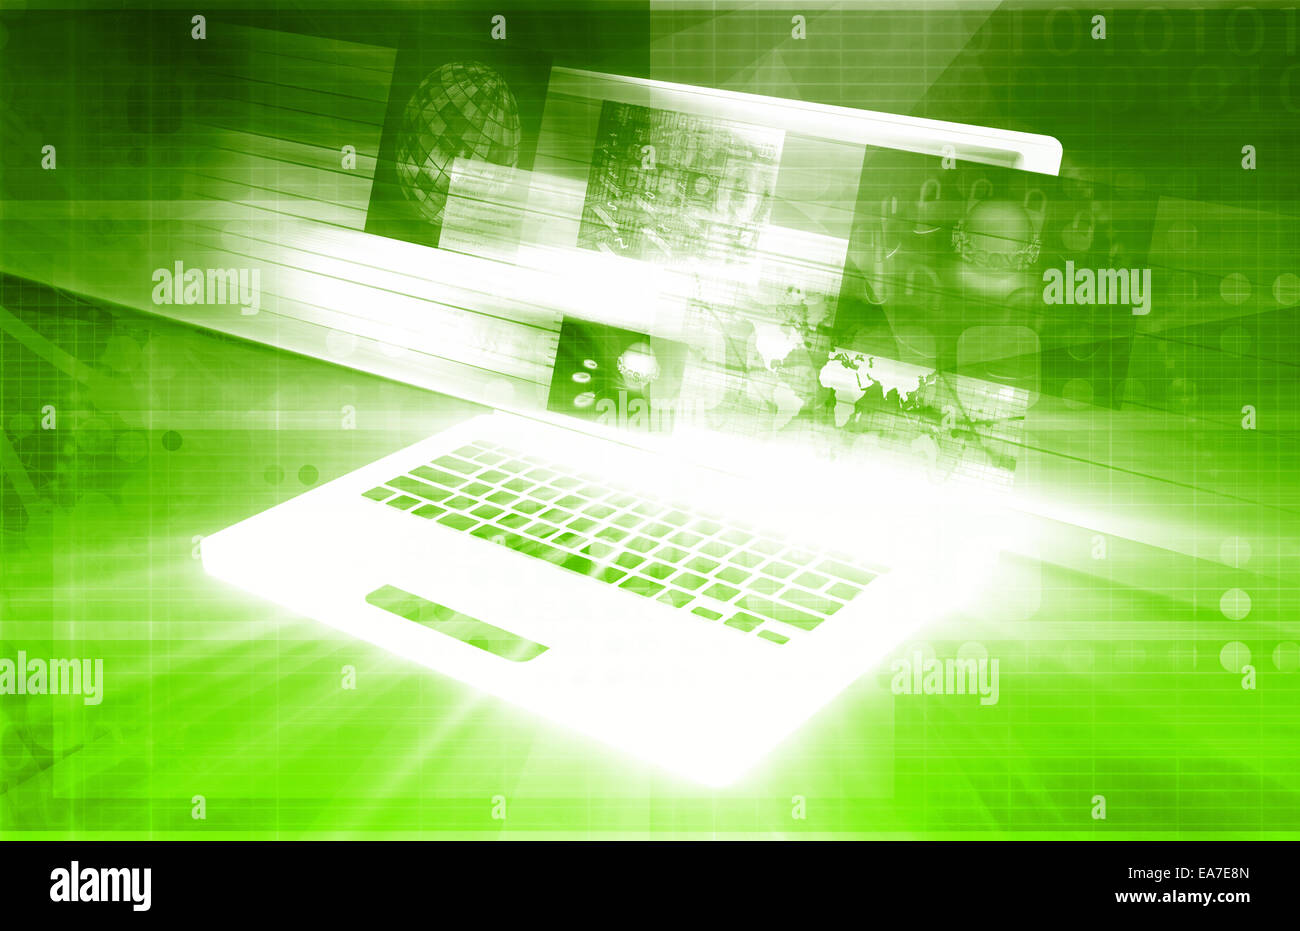 Antivirus and Firewall Security System as Concept Stock Photo